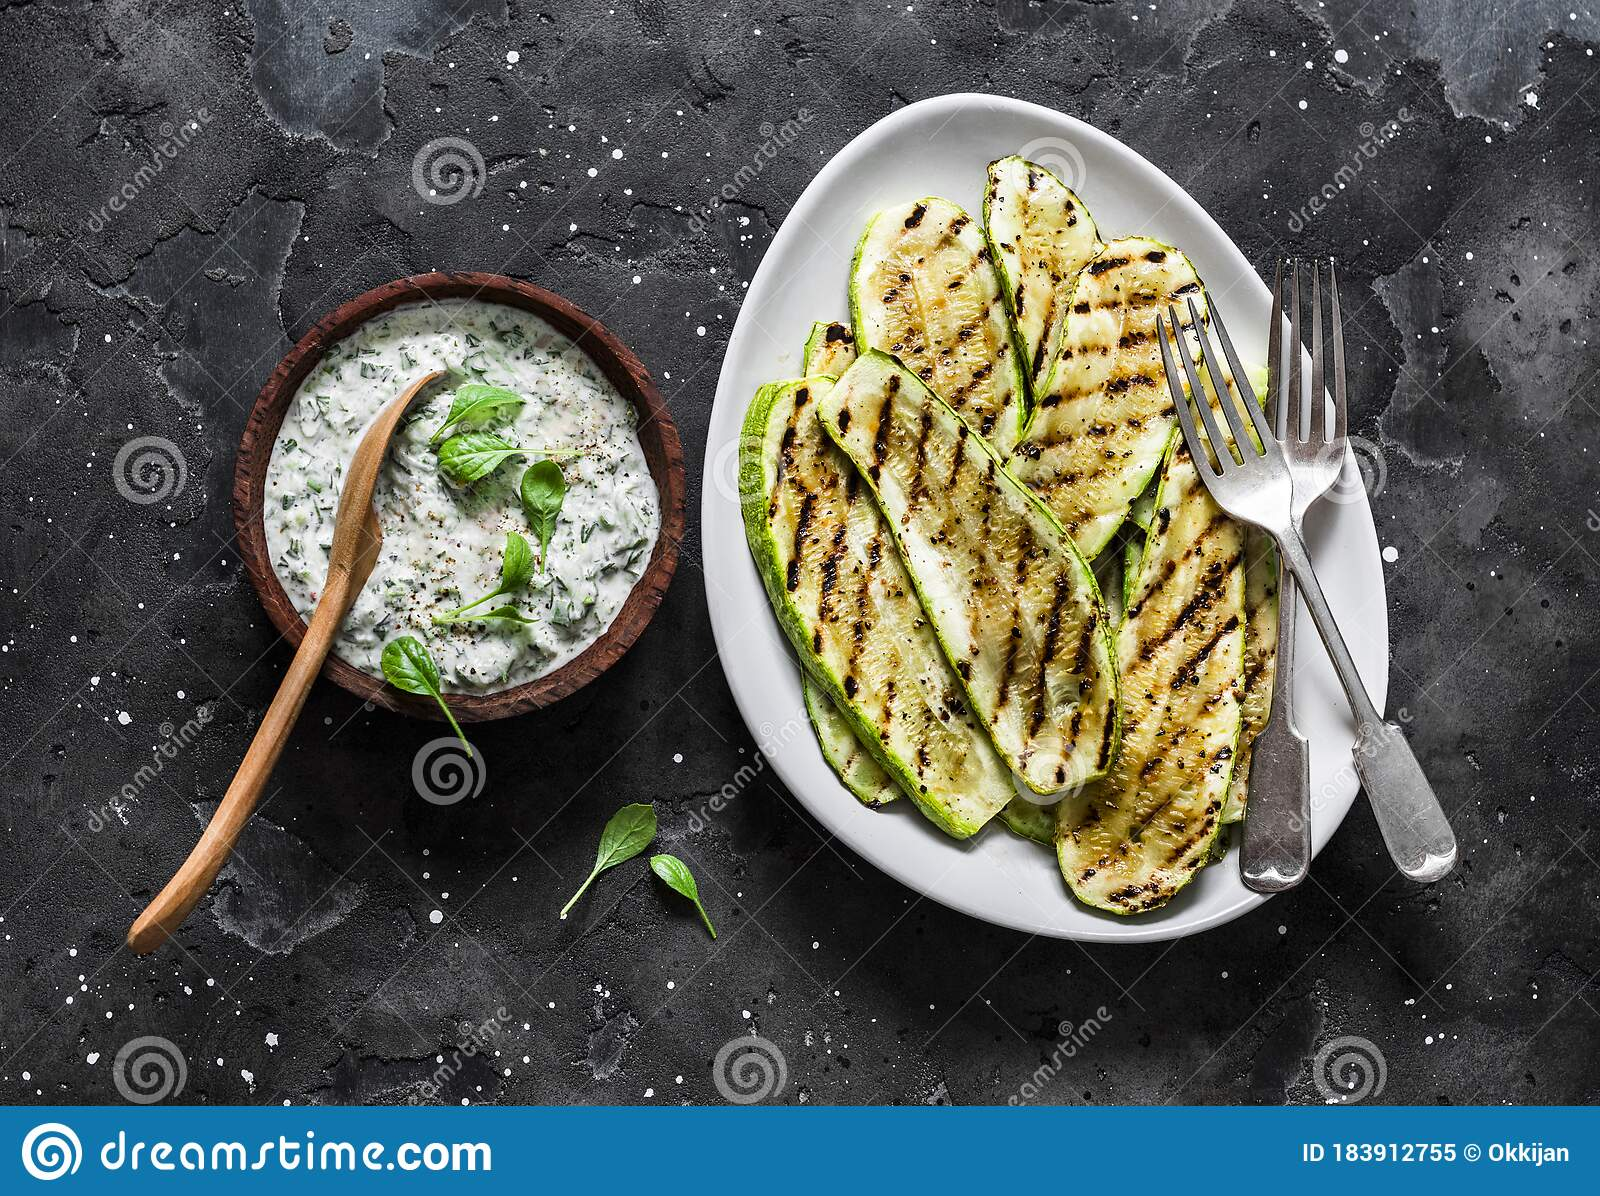 Grilled Zucchini And Tzatziki Sauce Delicious Greek Style Snack Tapas On A Dark Background Top View Stock Image Image Of Coriander Served 183912755